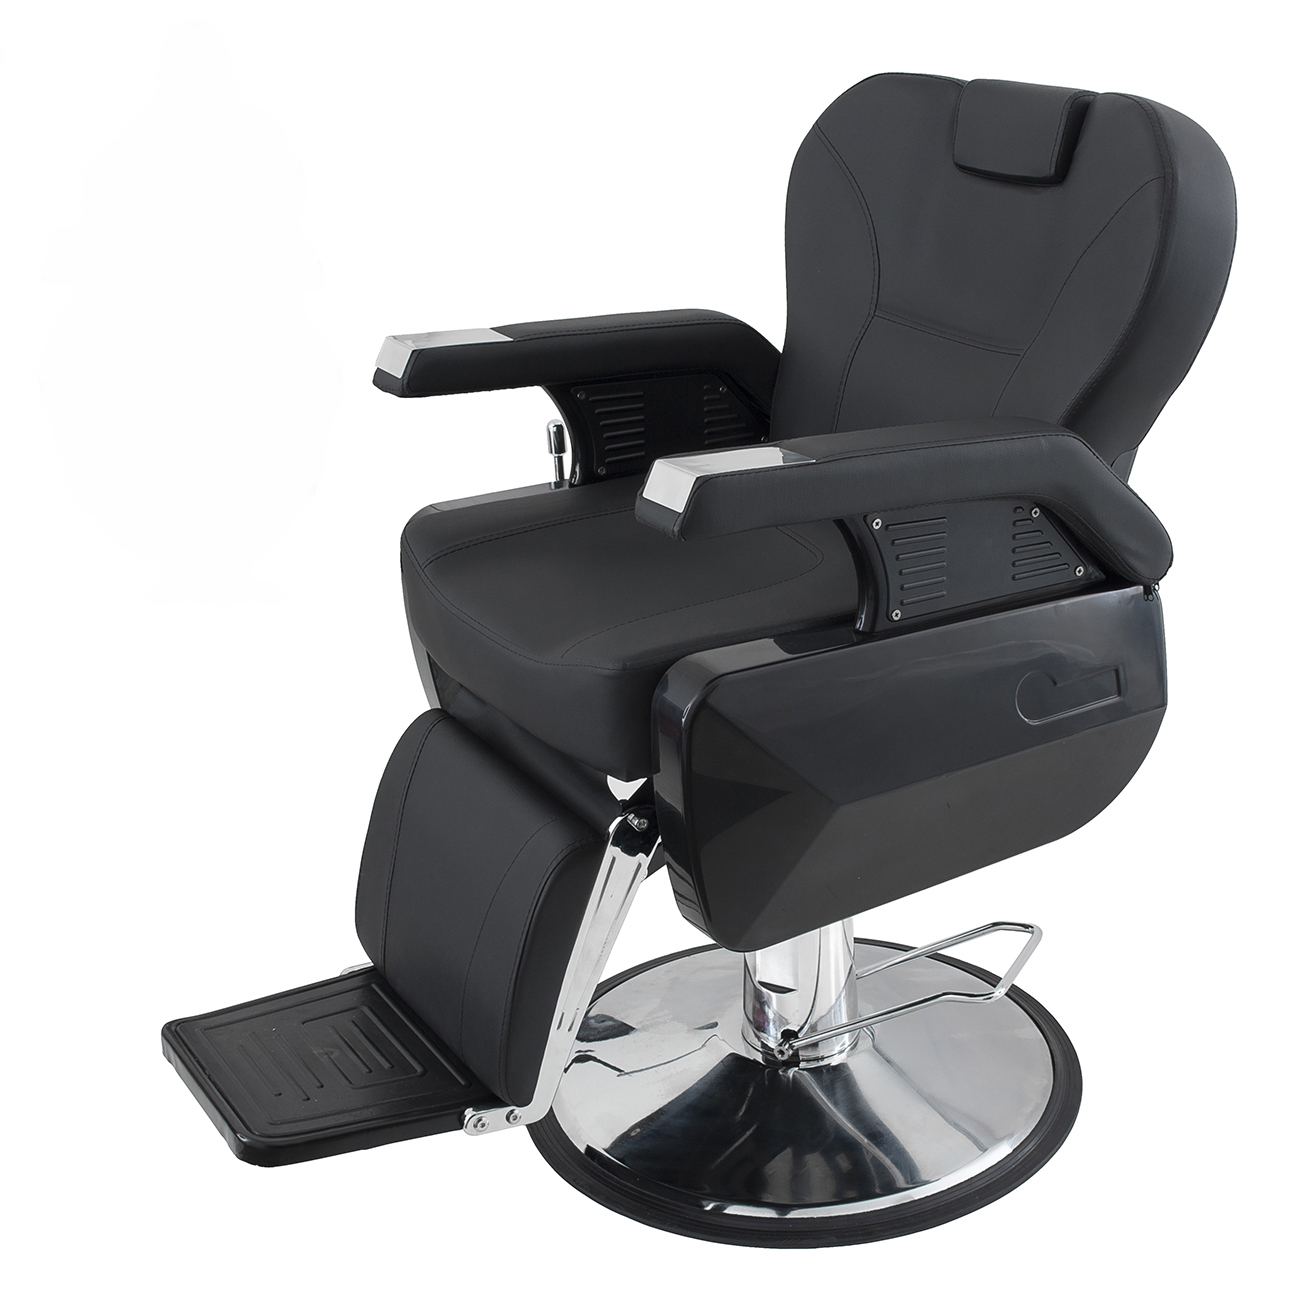 Hair cutting hydraulic reclining barber chair spa salon for Hydraulic chairs beauty salon